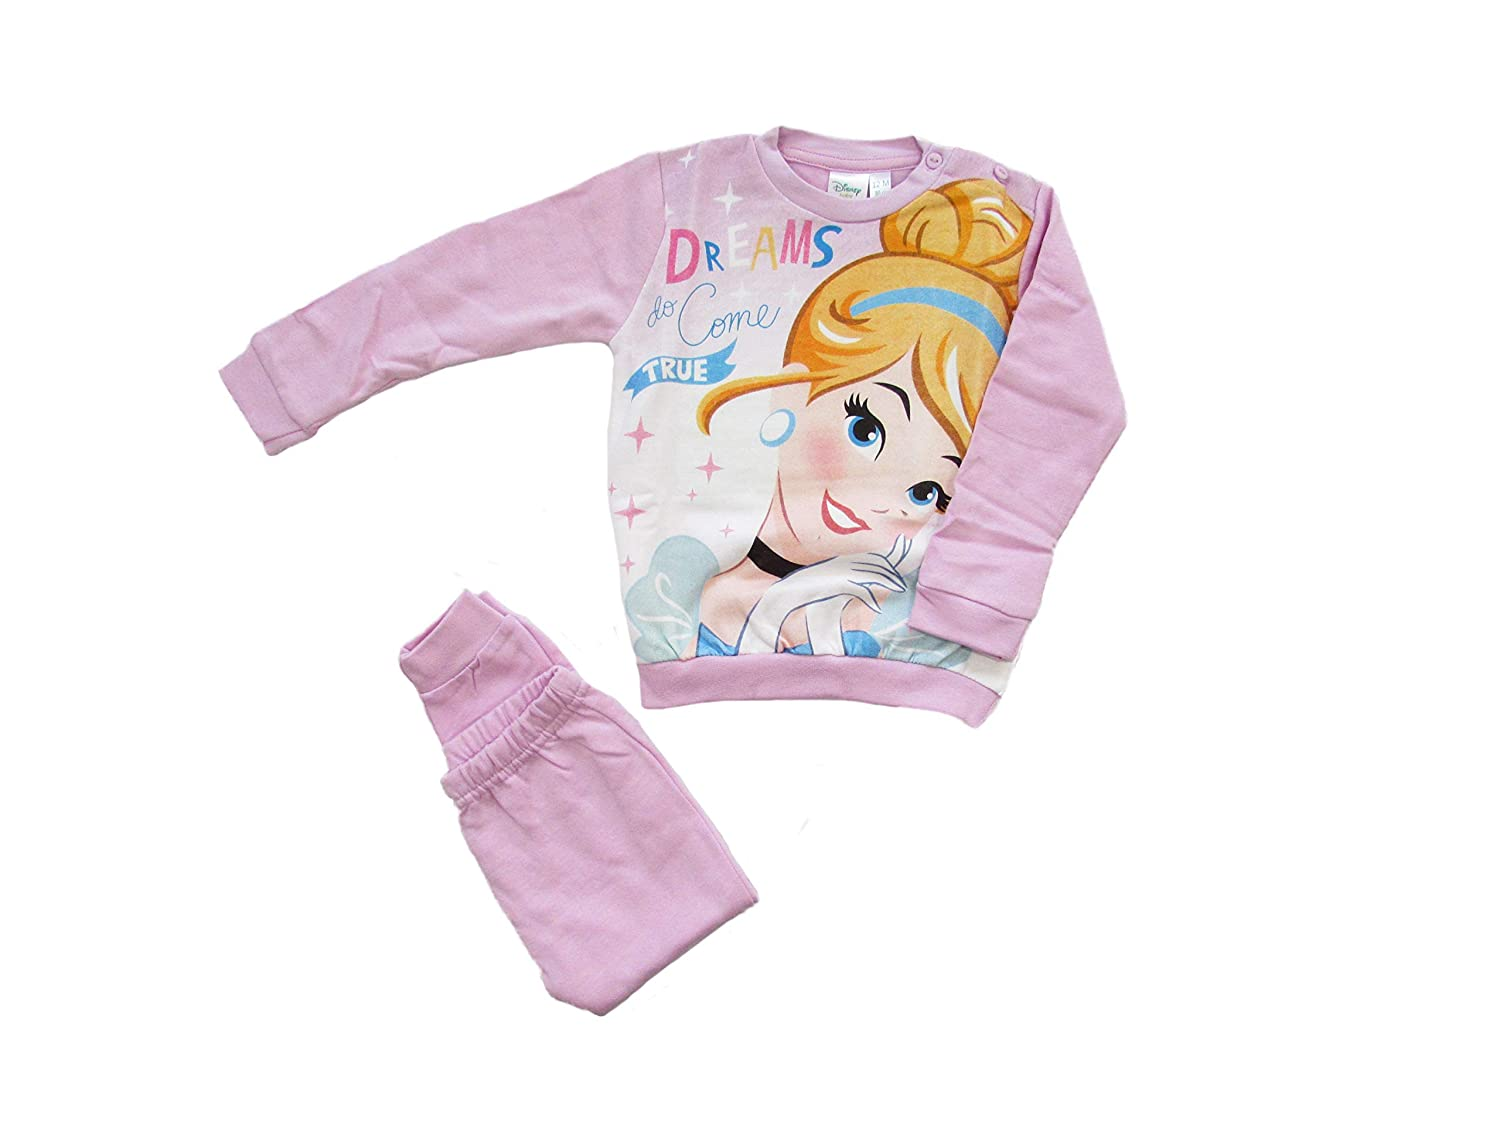 ARNETTA Disney Baby Pigiama neonata Princess Invernale, Felpato all'Interno - Art. 45724 Felpato all' Interno - Art. 45724